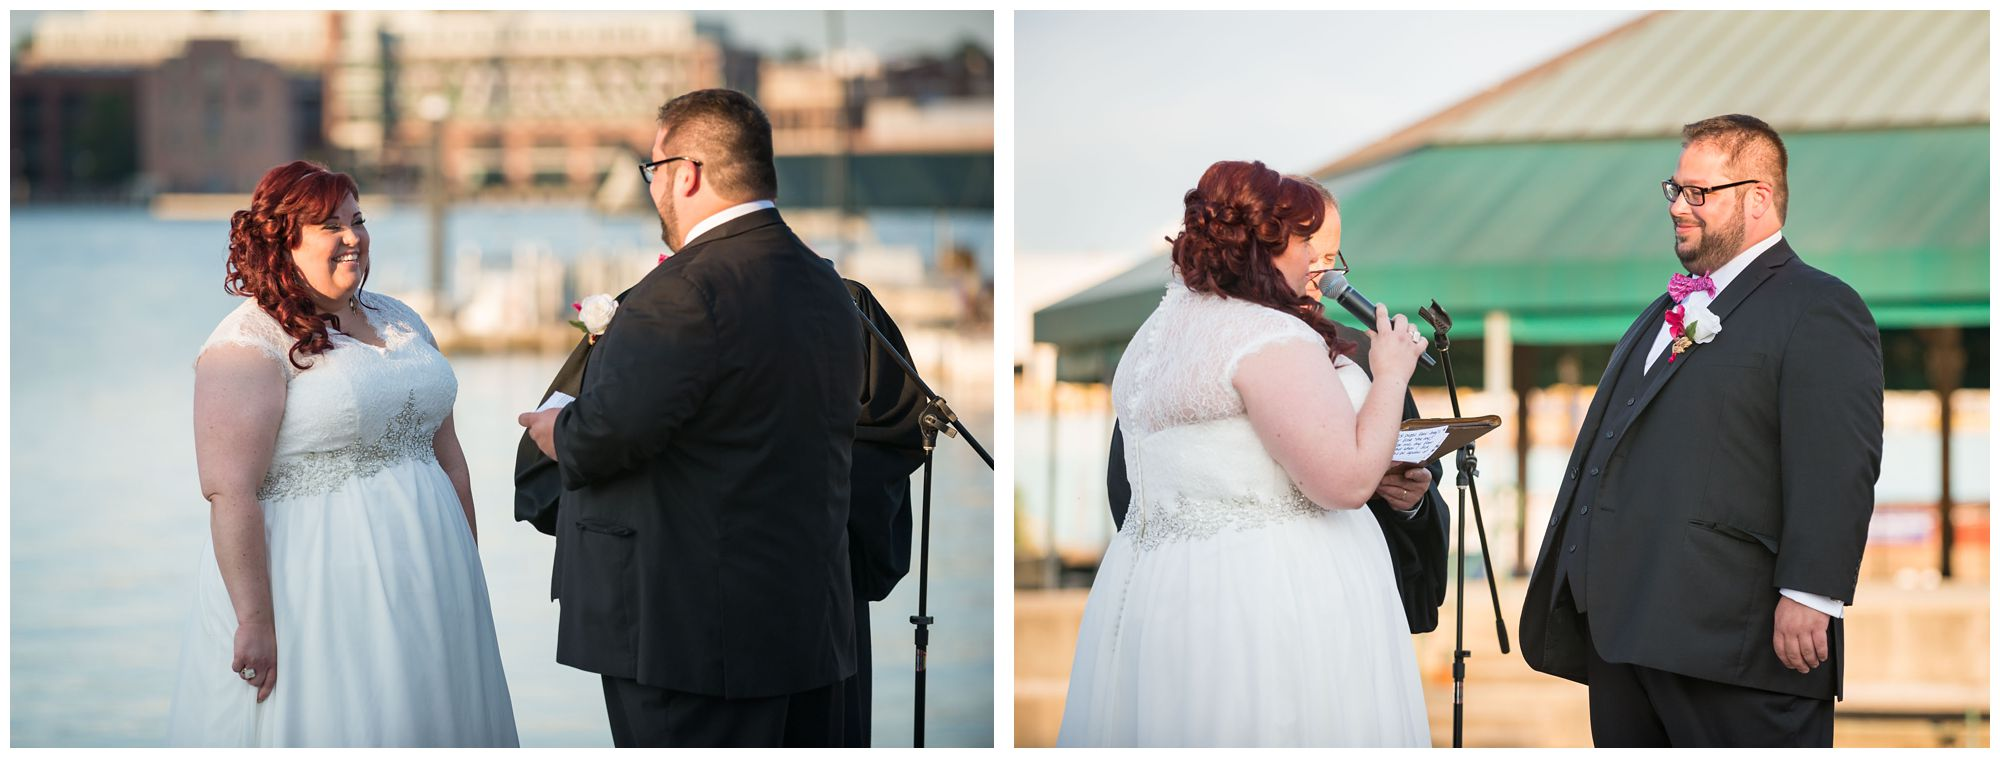 Bride and groom exchanging vows during harbor wedding at Baltimore Museum of Industry